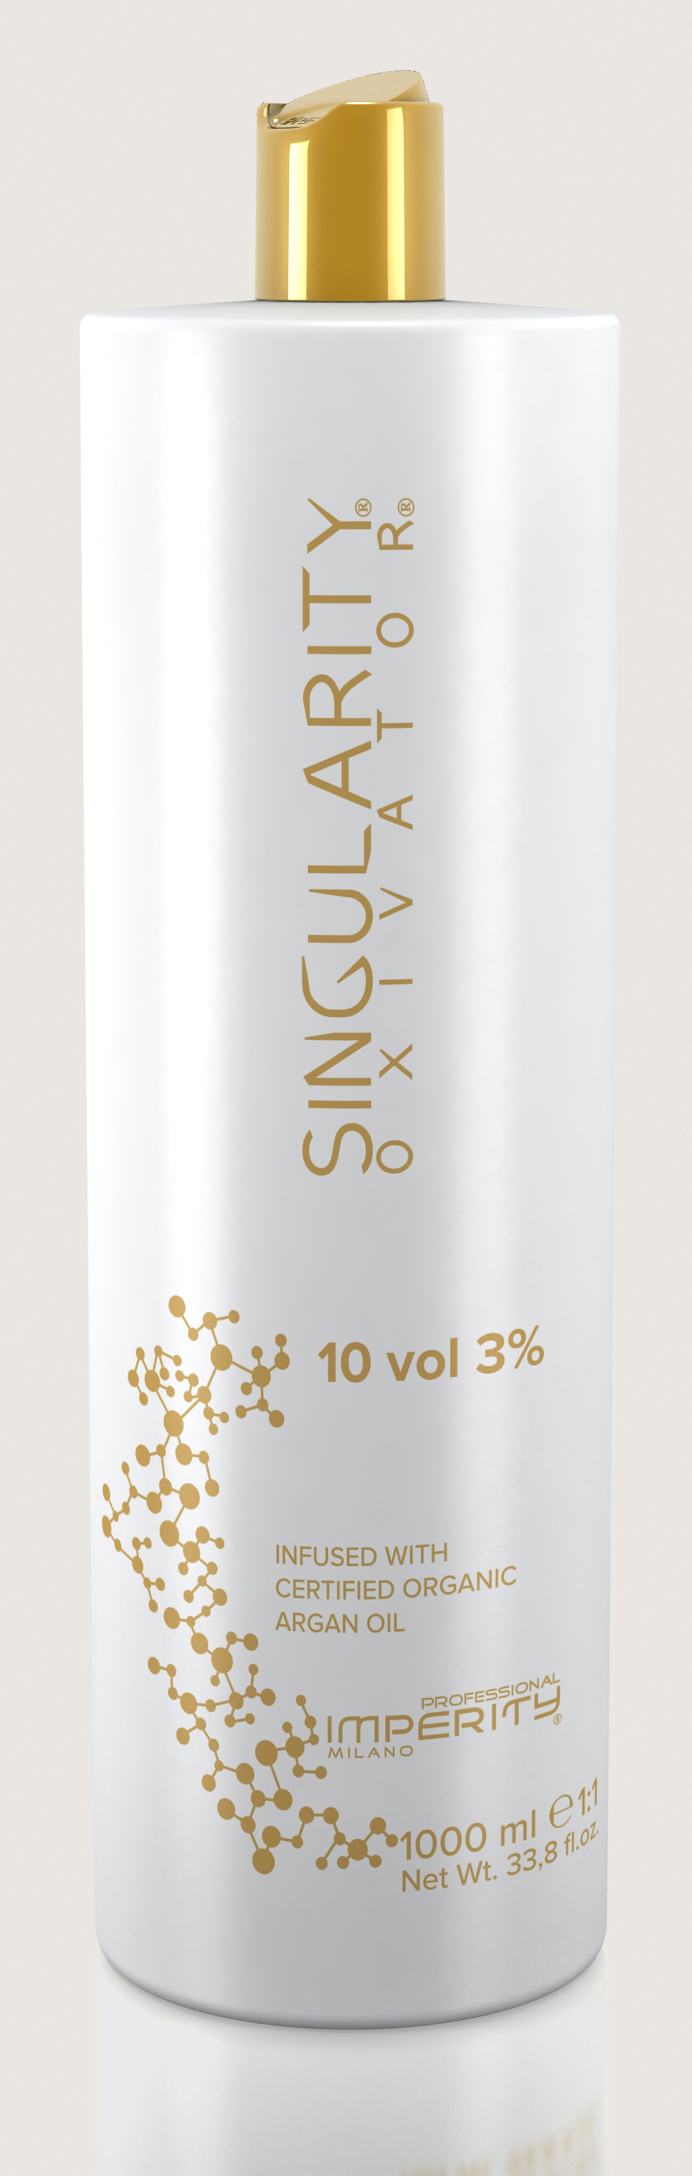 IMPERITY SINGULARITY Oxivator 3% 1000 ml